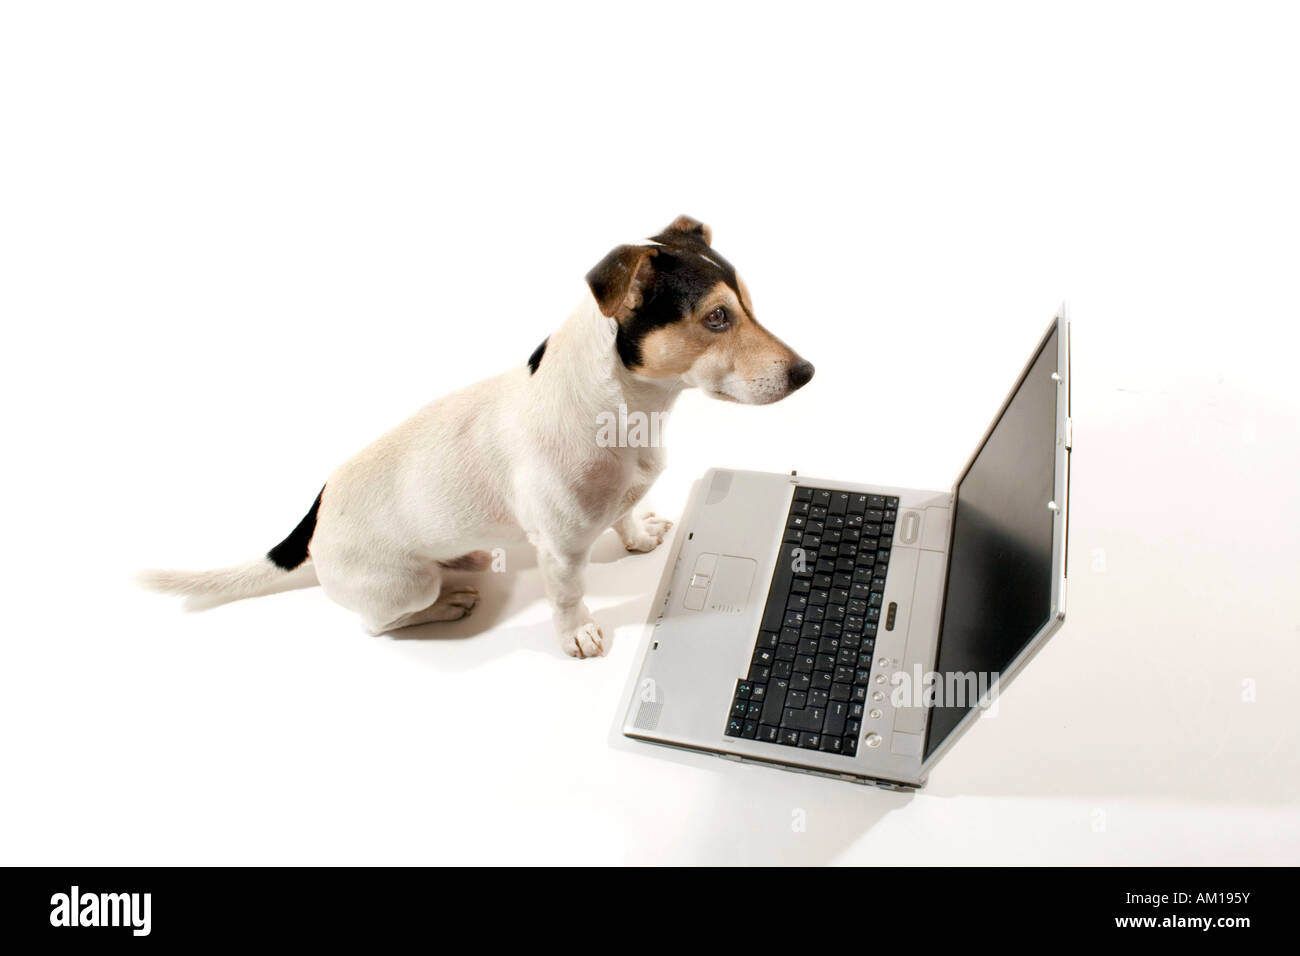 Jack Russell sitting in front of a notebook - Stock Image